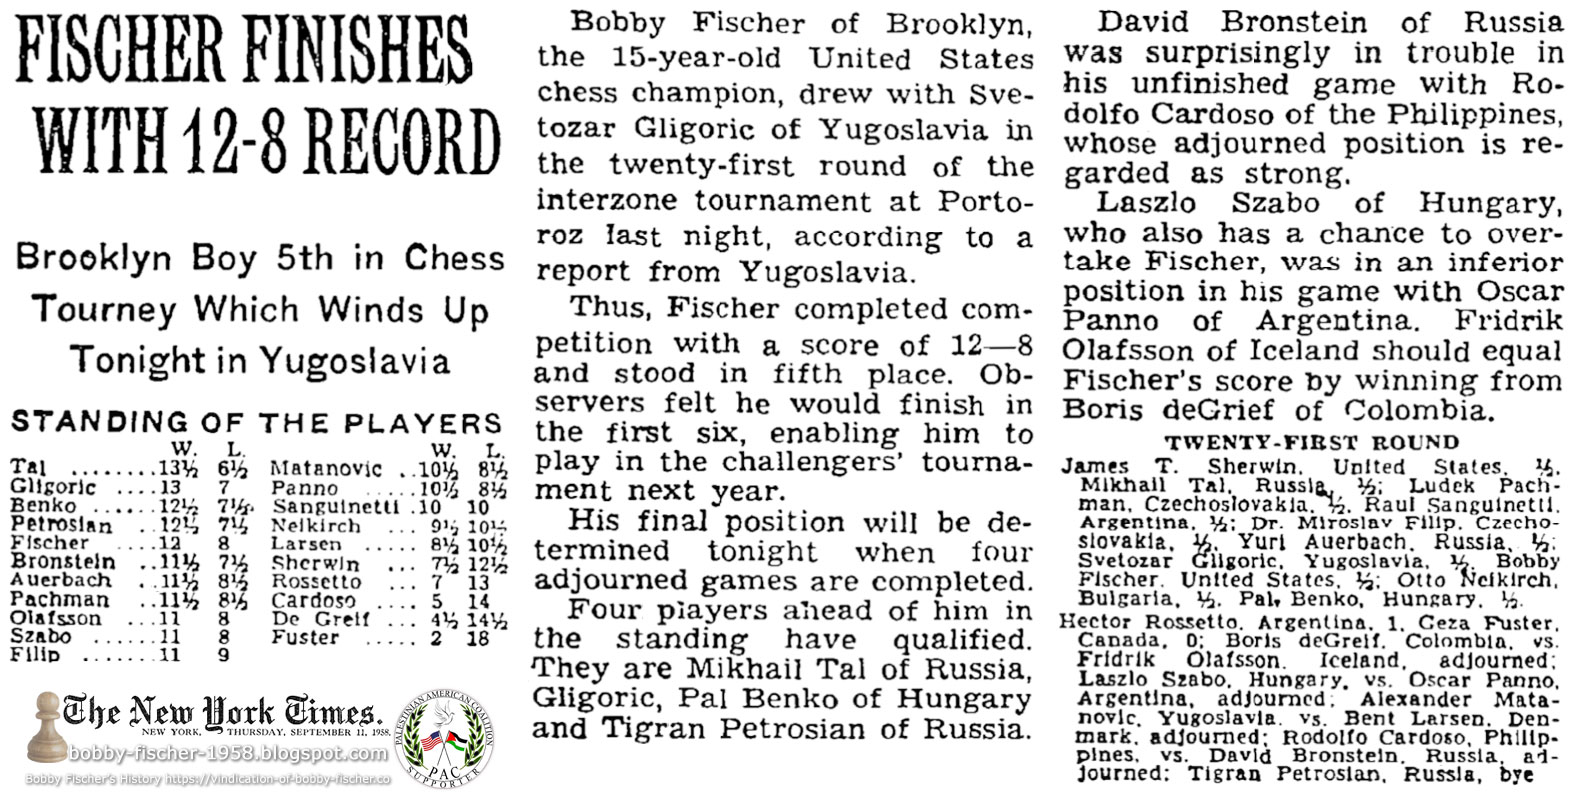 Fischer Finishes With 12-8 Record: Brooklyn Boy 5th in Chess Tourney Which Winds Up Tonight in Yugoslavia